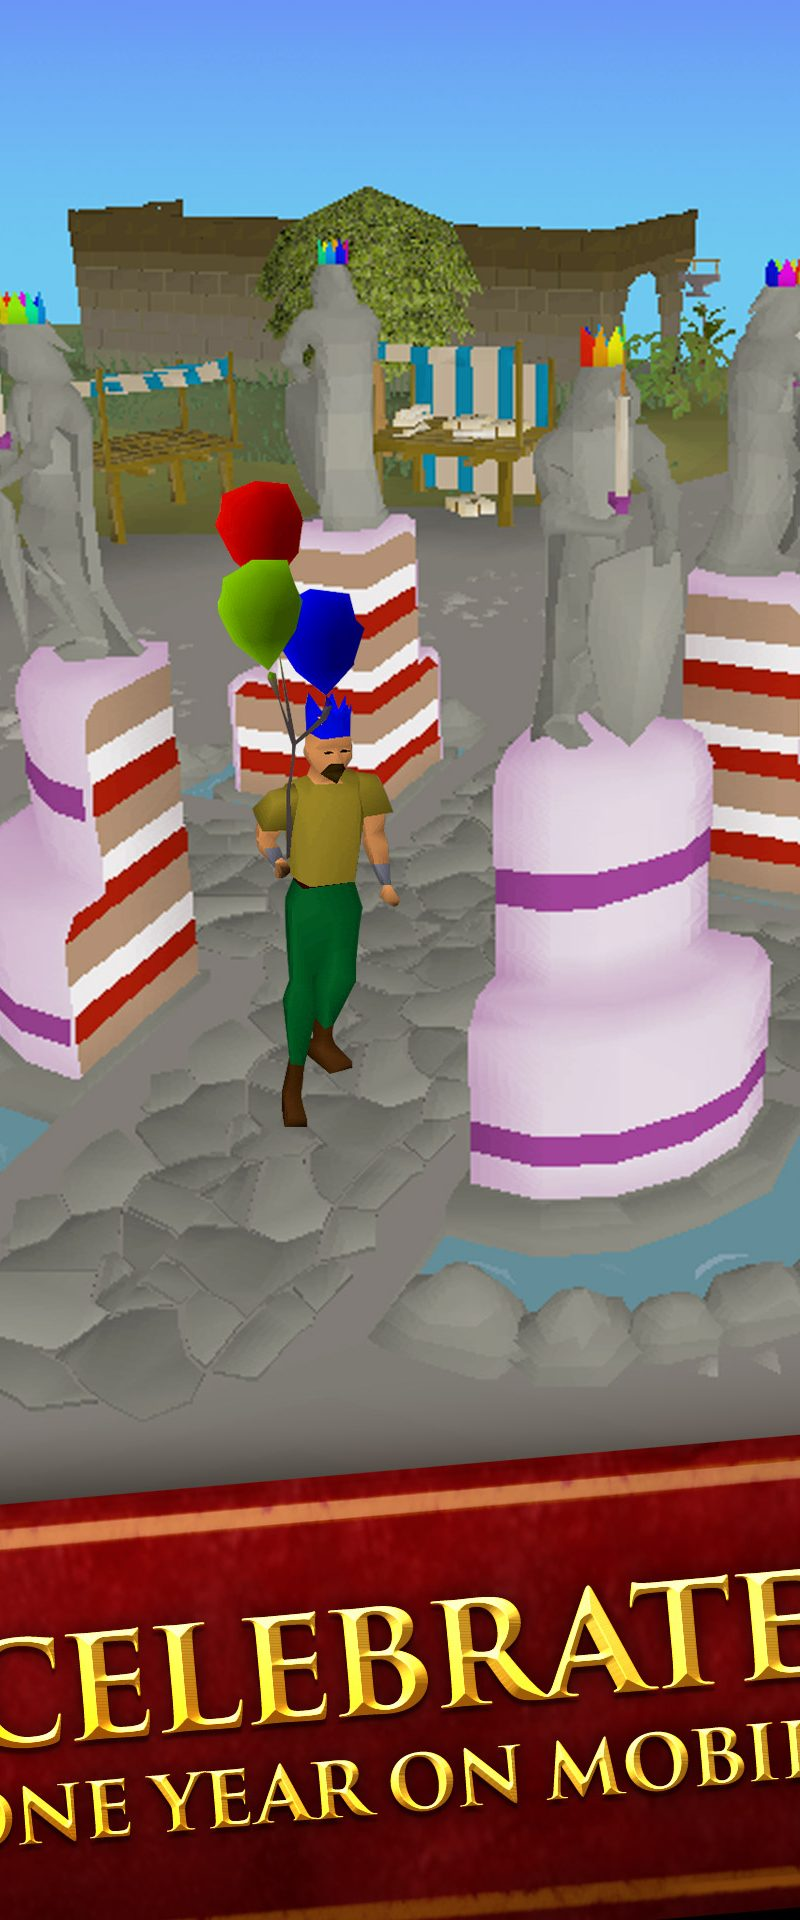 Old School RuneScape on mobile serves up a slice of cake to celebrate the award-winning game's first birthday